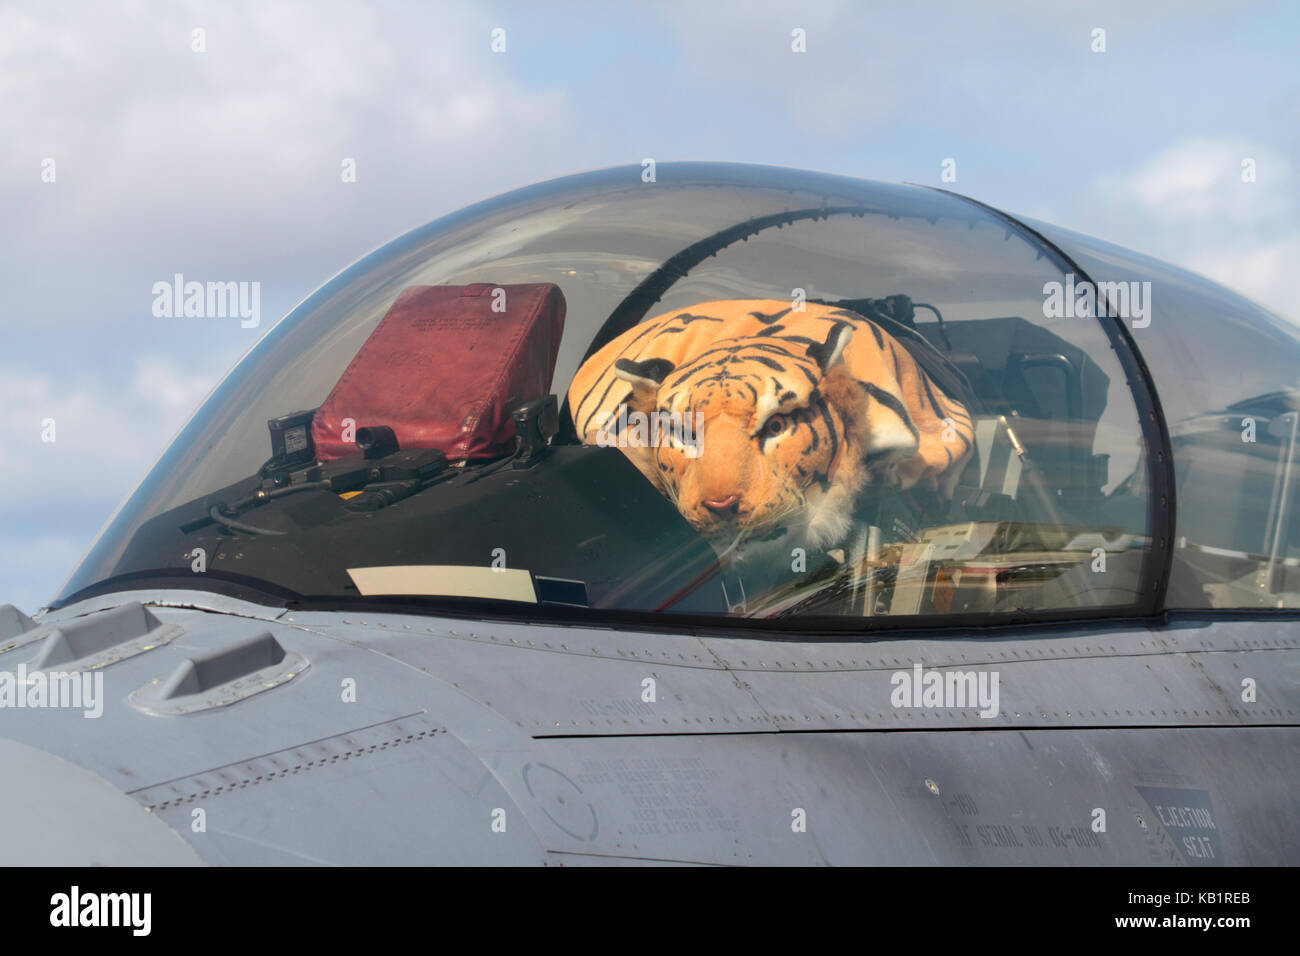 Polish Air Force F-16D jet fighter plane cockpit with tiger soft toy under closed canopy - Stock Image